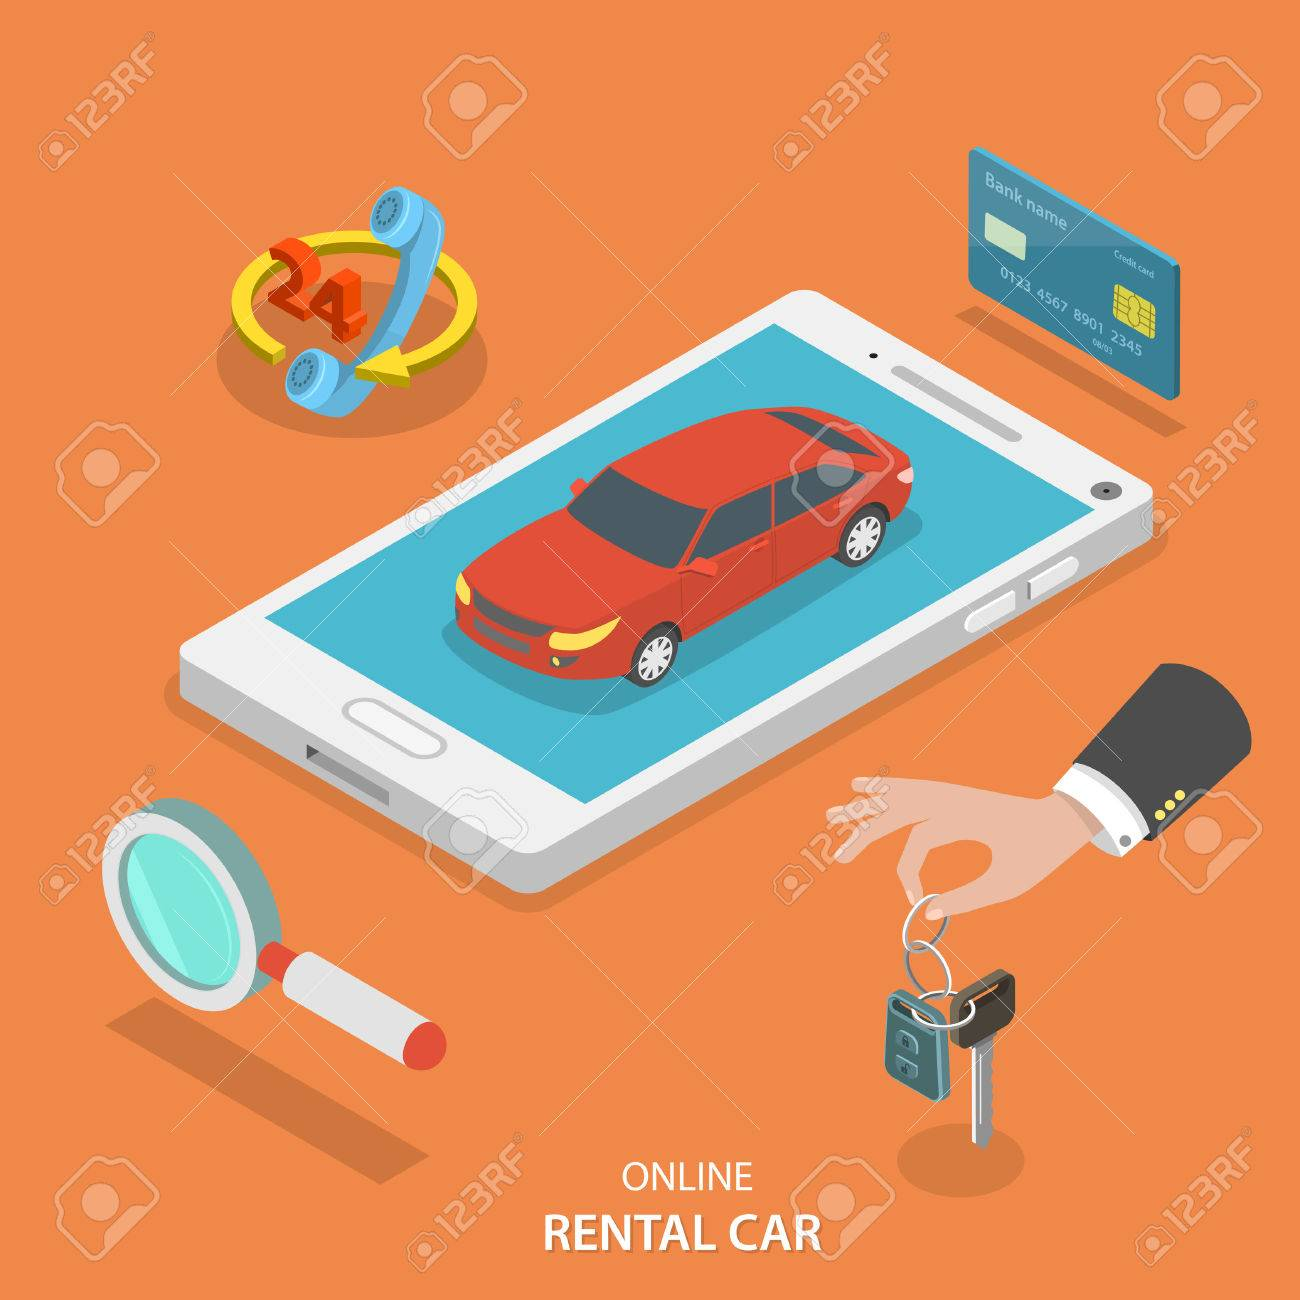 Online rental car service isometric flat vector concept. Red car on the mobile phone surrounded by thematic icons. - 48713616